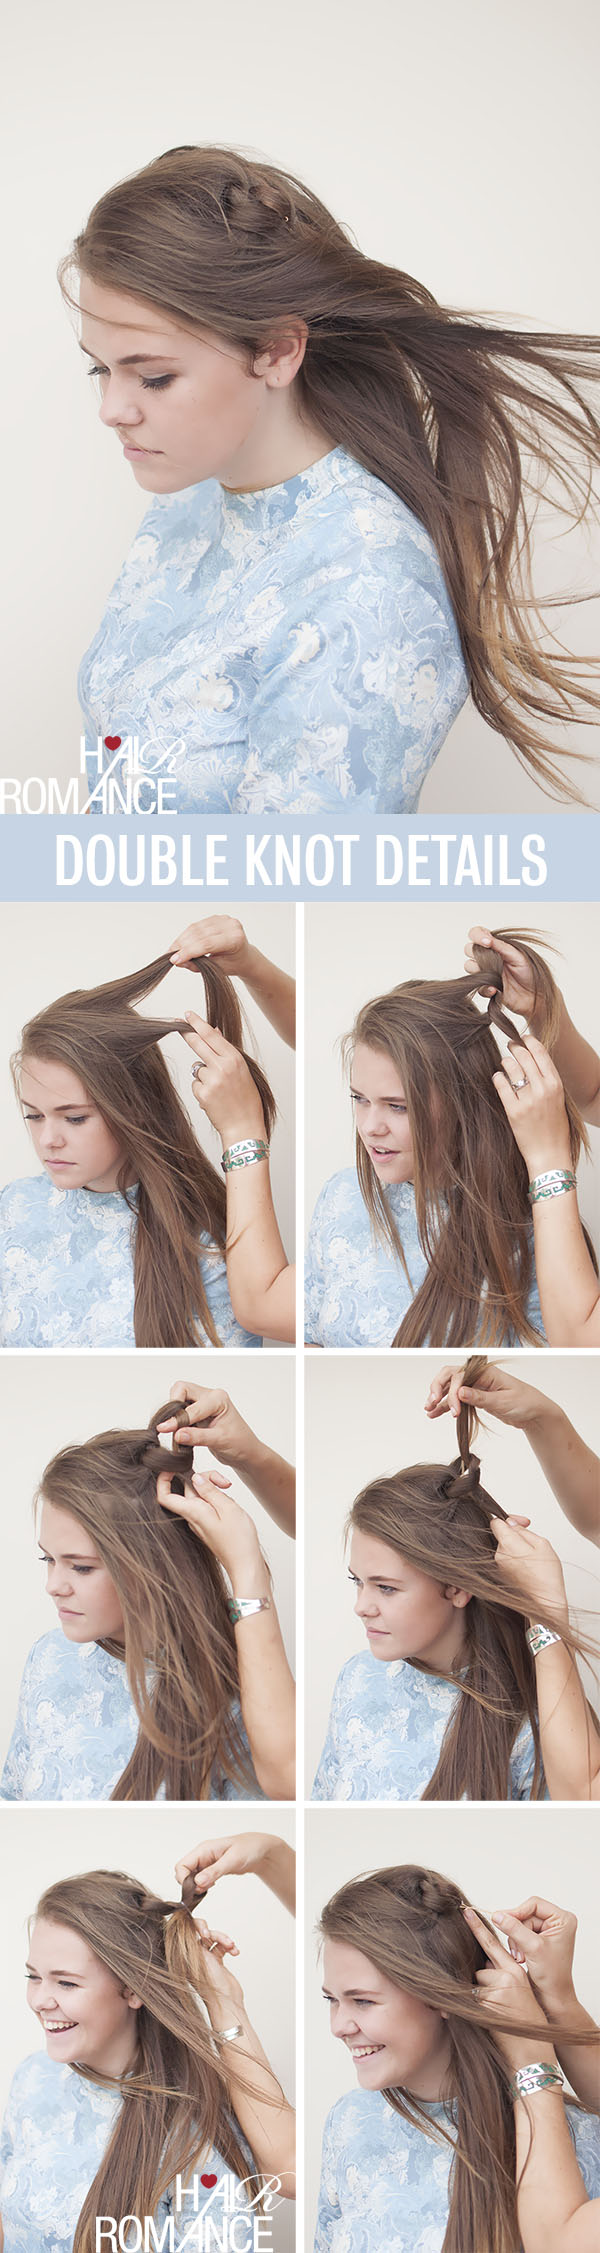 Hair Romance - double knot hairstyle tutorial